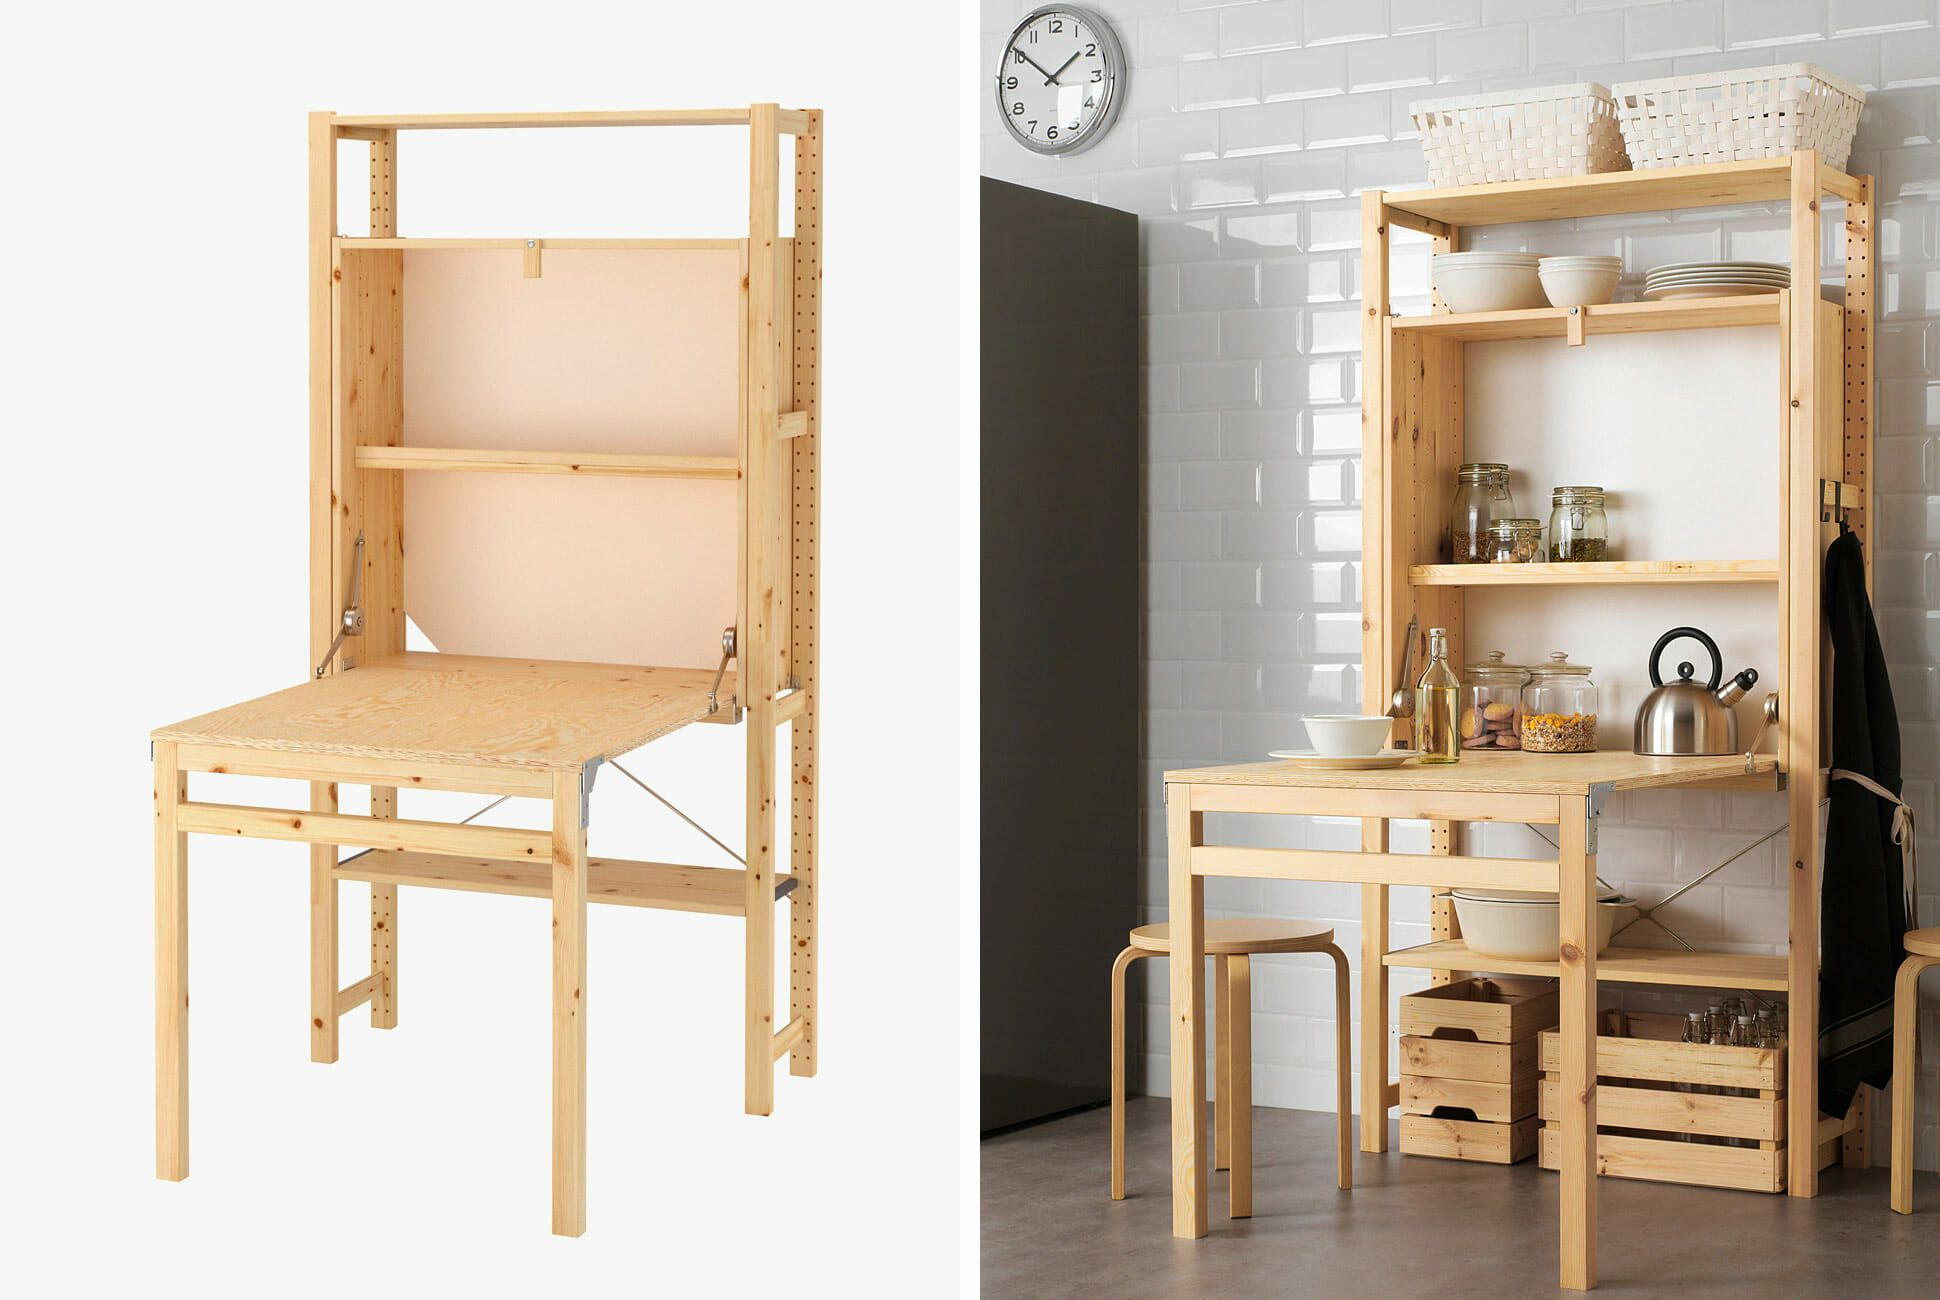 Ikea S Newest Innovation Was Made For Small Kitchens